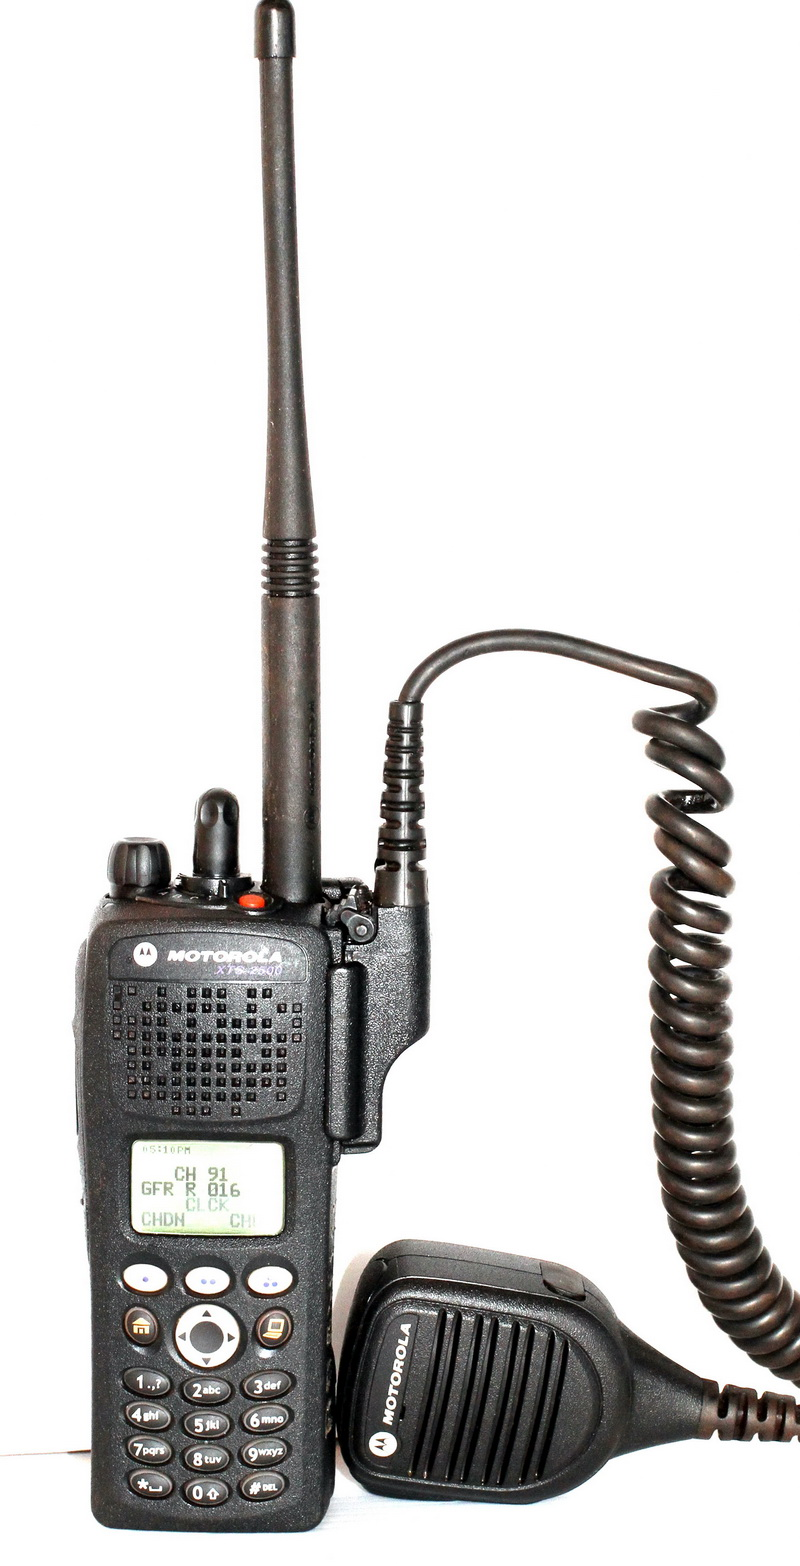 1350549 further 47183701 Motorola Two Way Portable And Mobile Radio Accessory And Battery Catalog moreover 800 Mhz Radio additionally Cid XTS1500 furthermore Motorola Mt 1500 800 Mhz Portable Radio H67ucd9 5 n. on the motorola xts 1500 digital portable radio